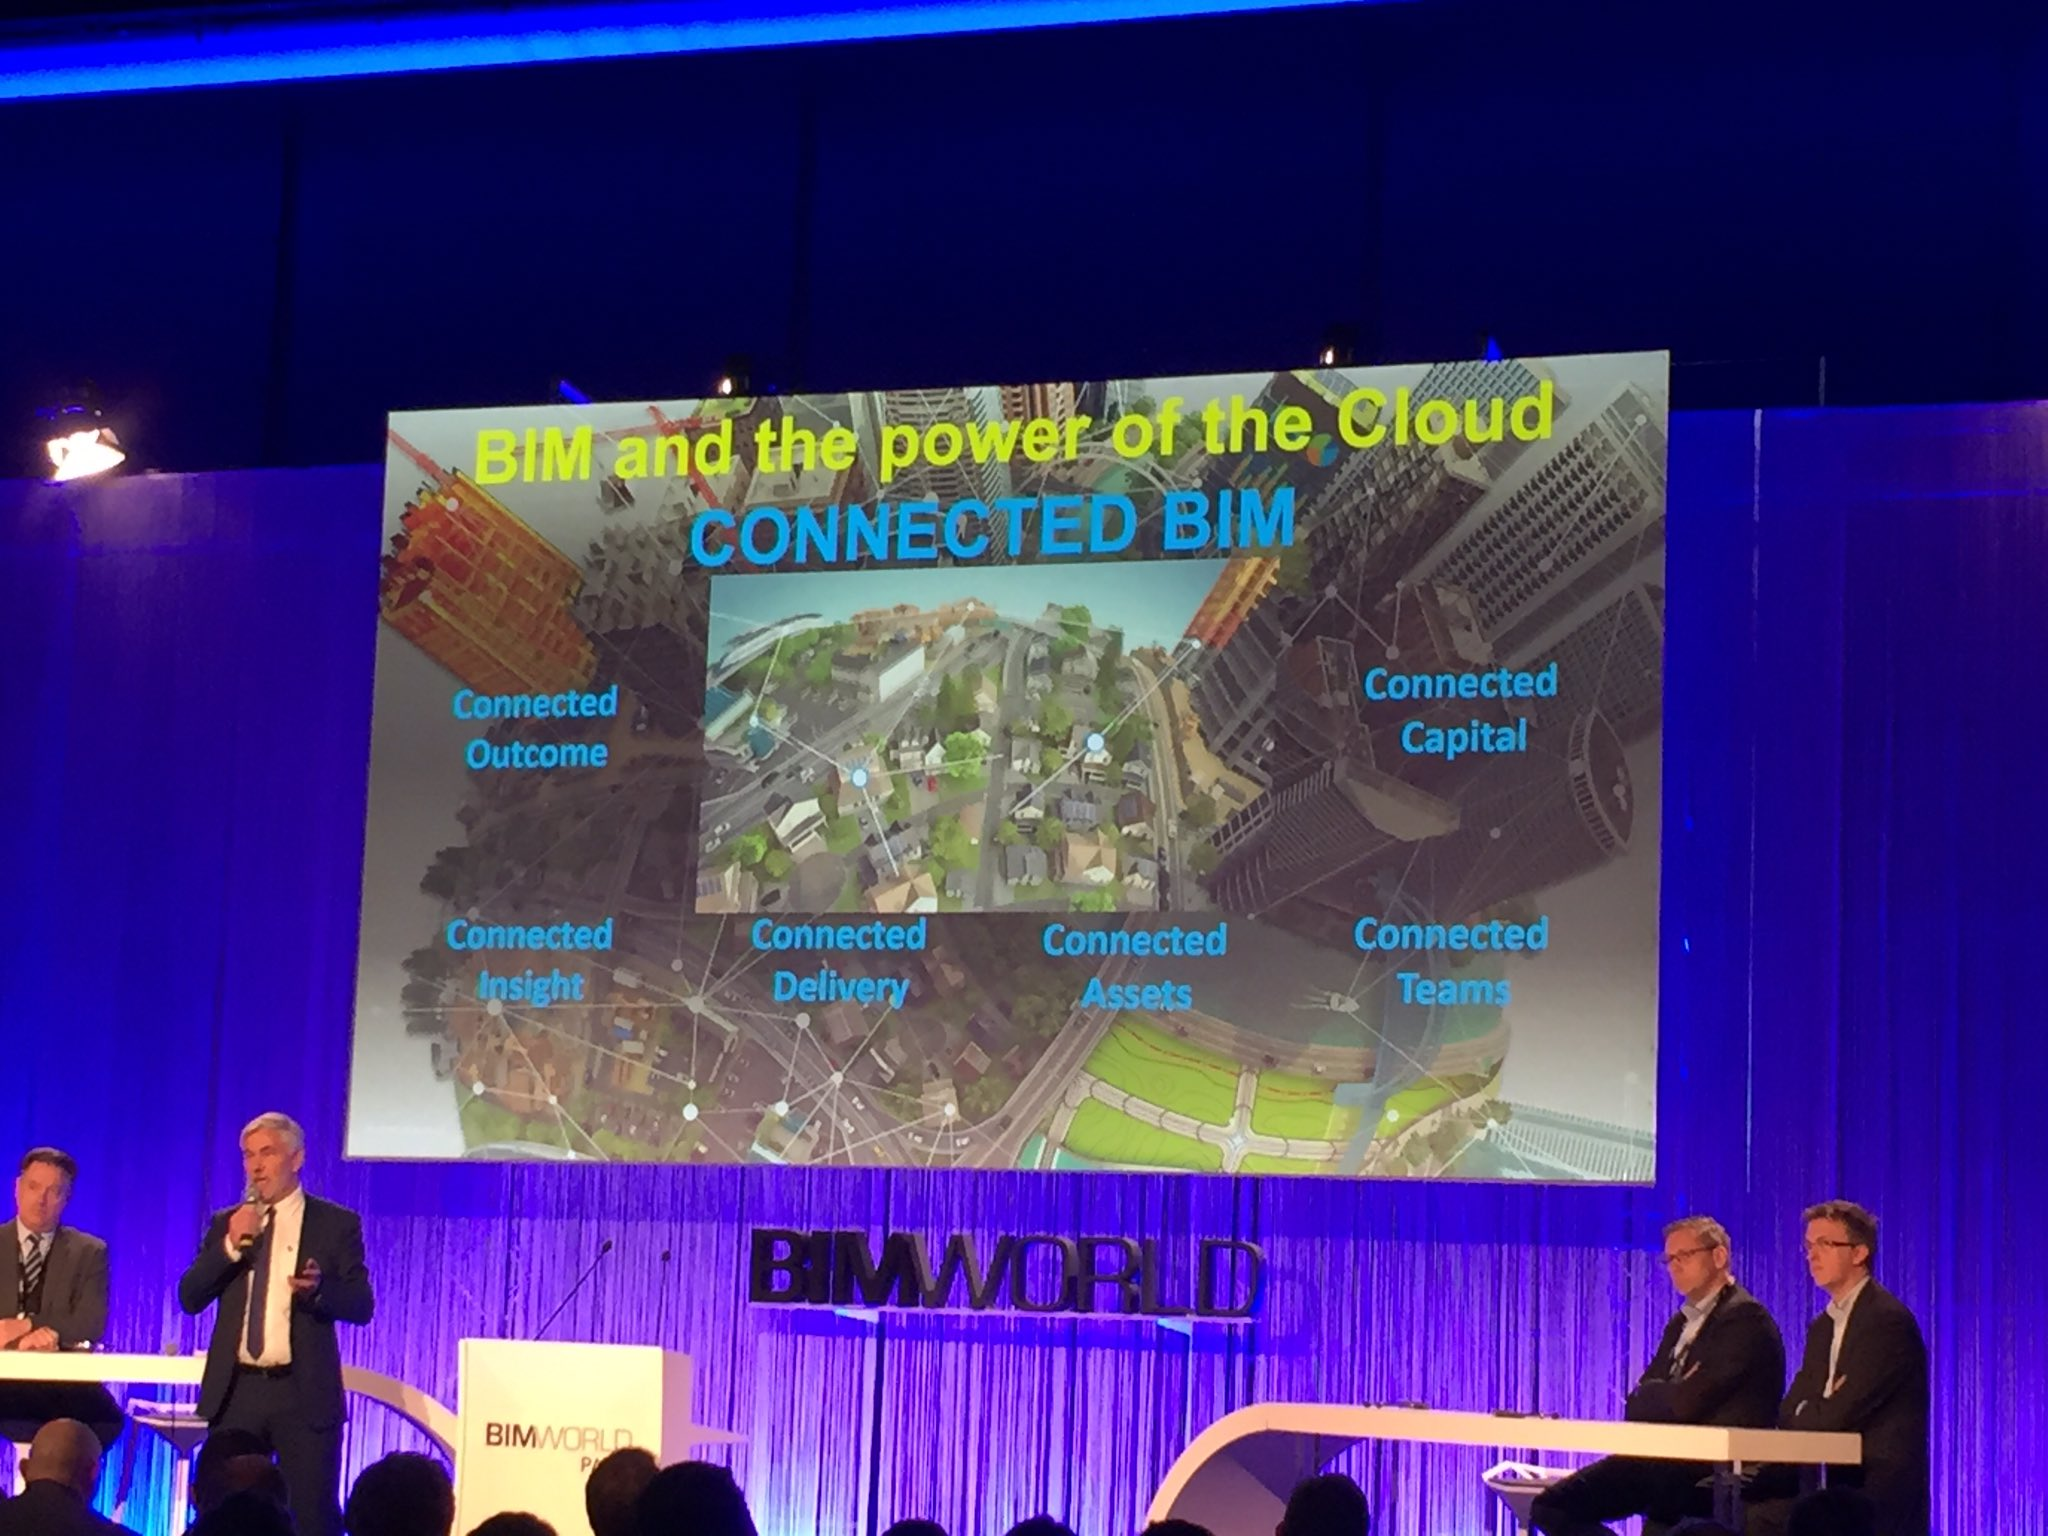 """Le #BIM connecté = le BIM + la puissance du cloud!"" Uwe Wasserman #BIMworld https://t.co/eor4liR2up"